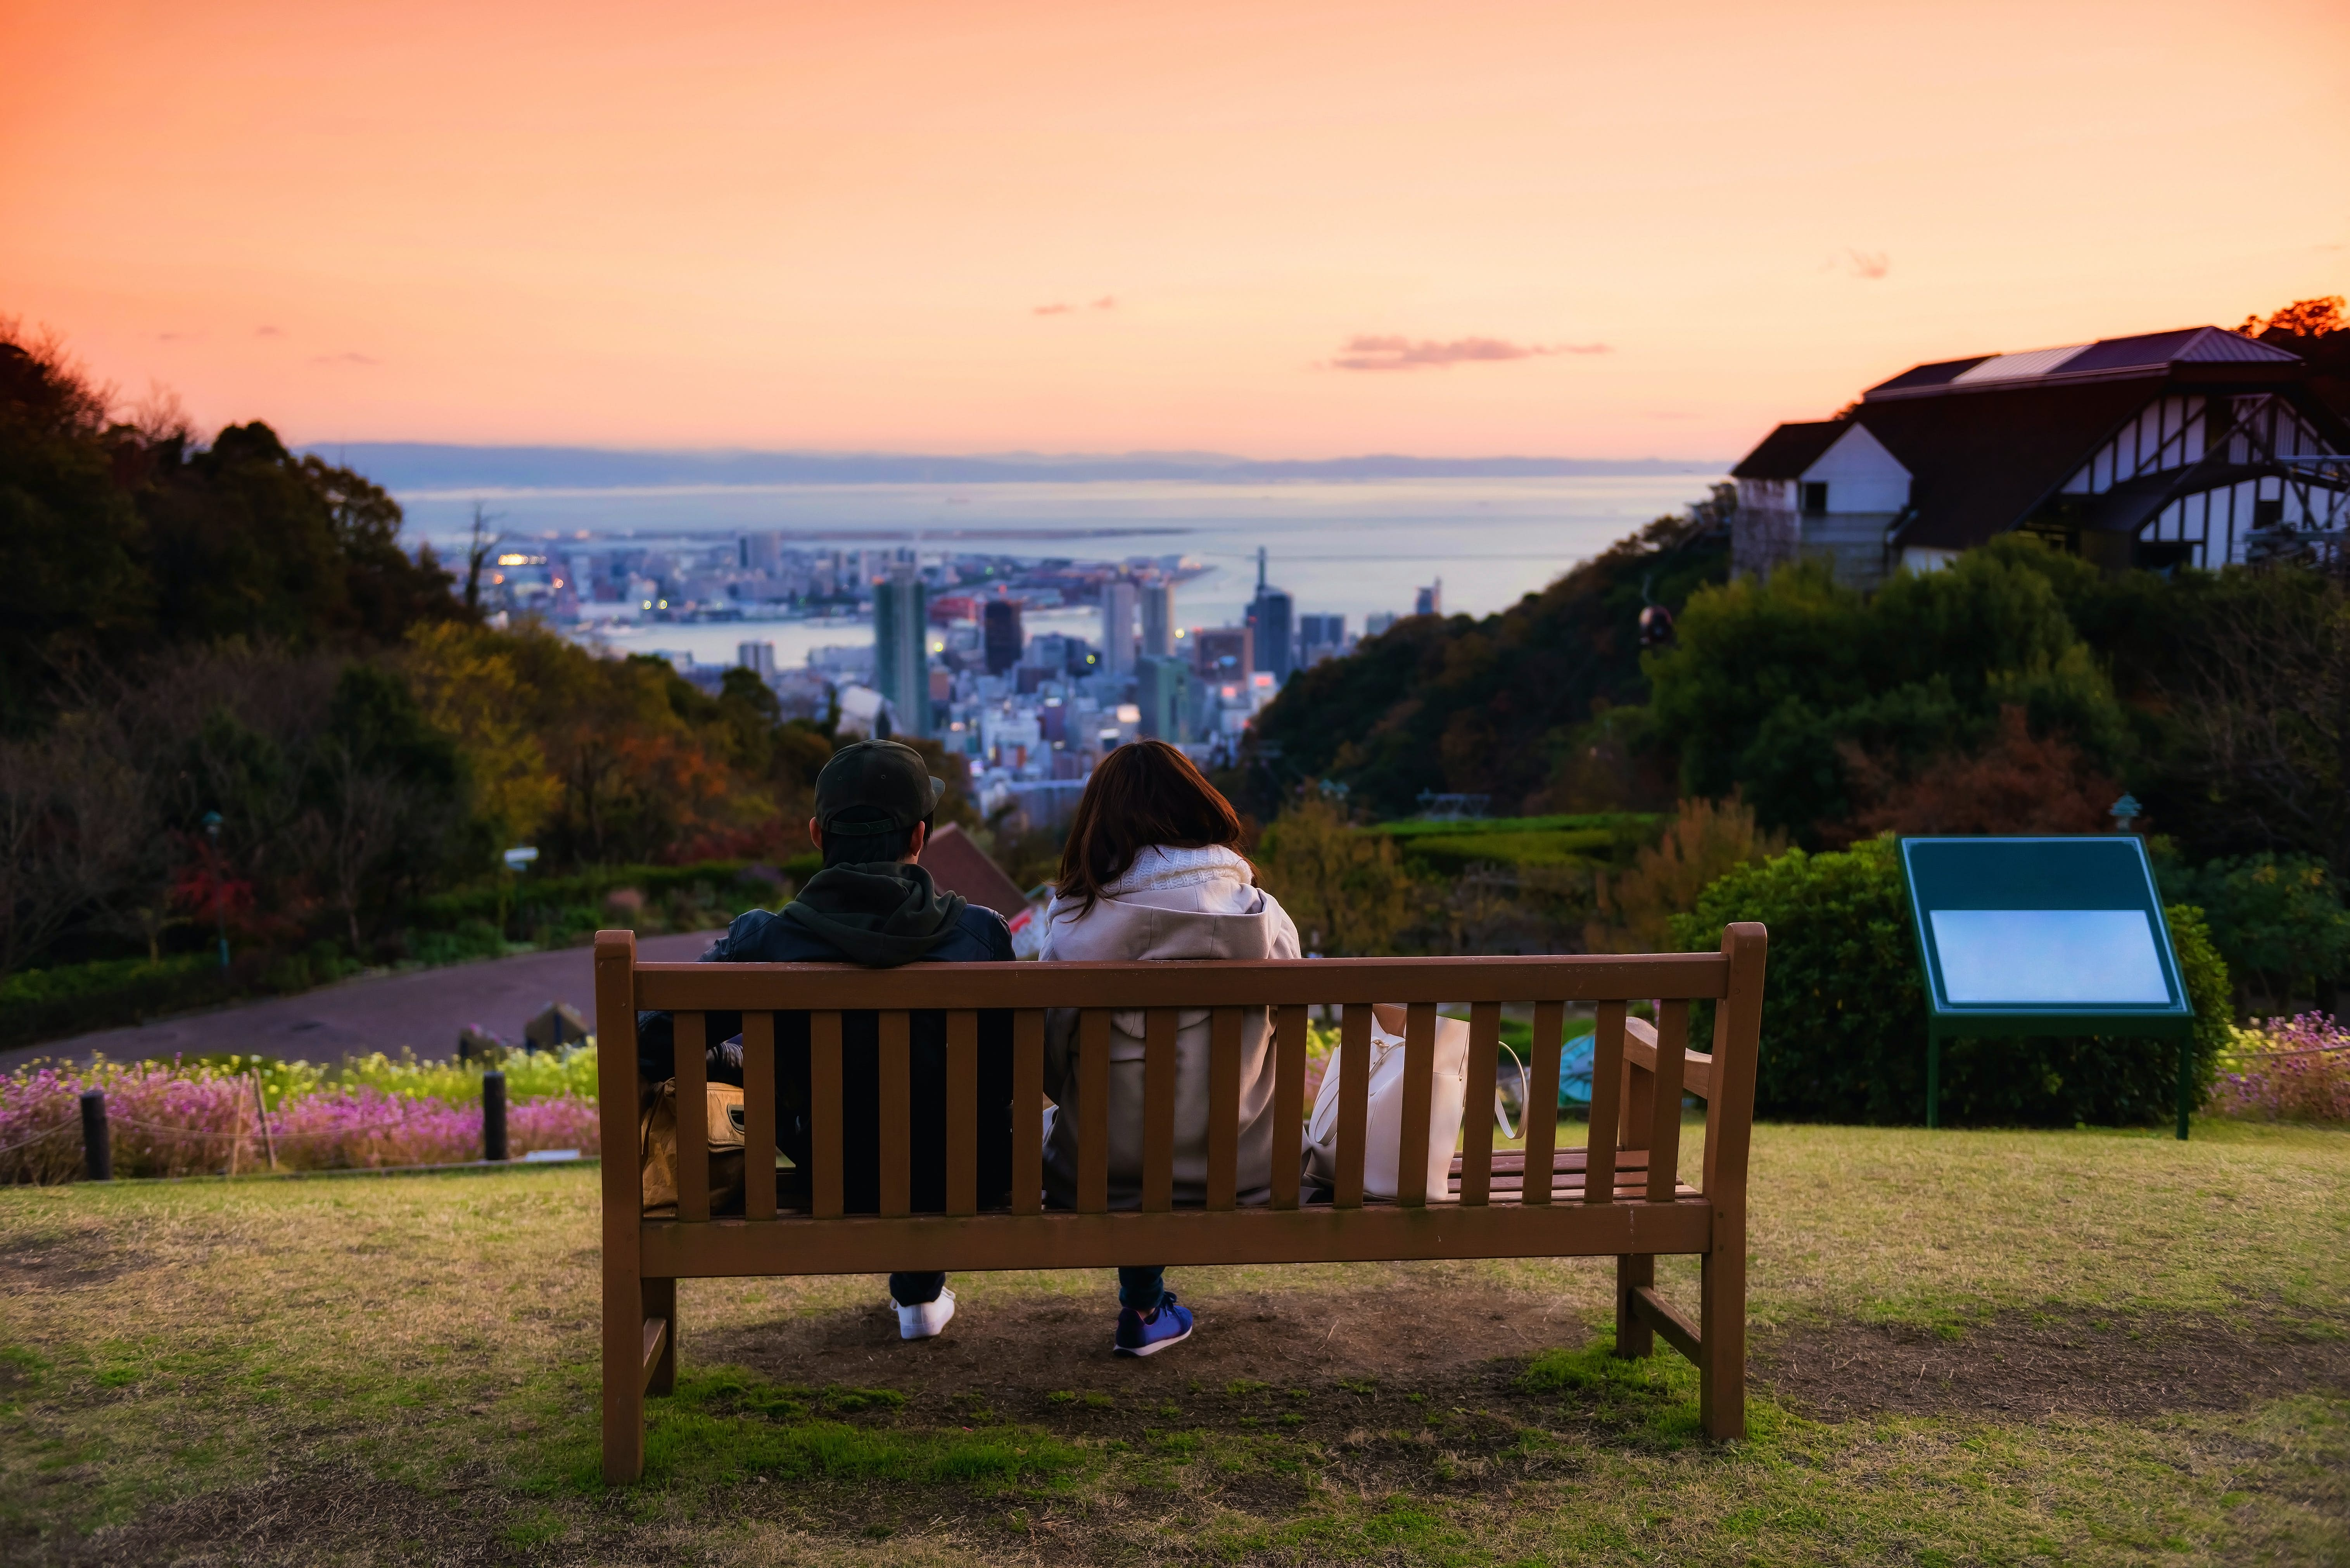 Sweet young couple sitting on wooden chair seat to enjoy aerial view of Kobe Nunobiki Herb Gardens and skyline cityscape with twilight sky at dusk, Japan.